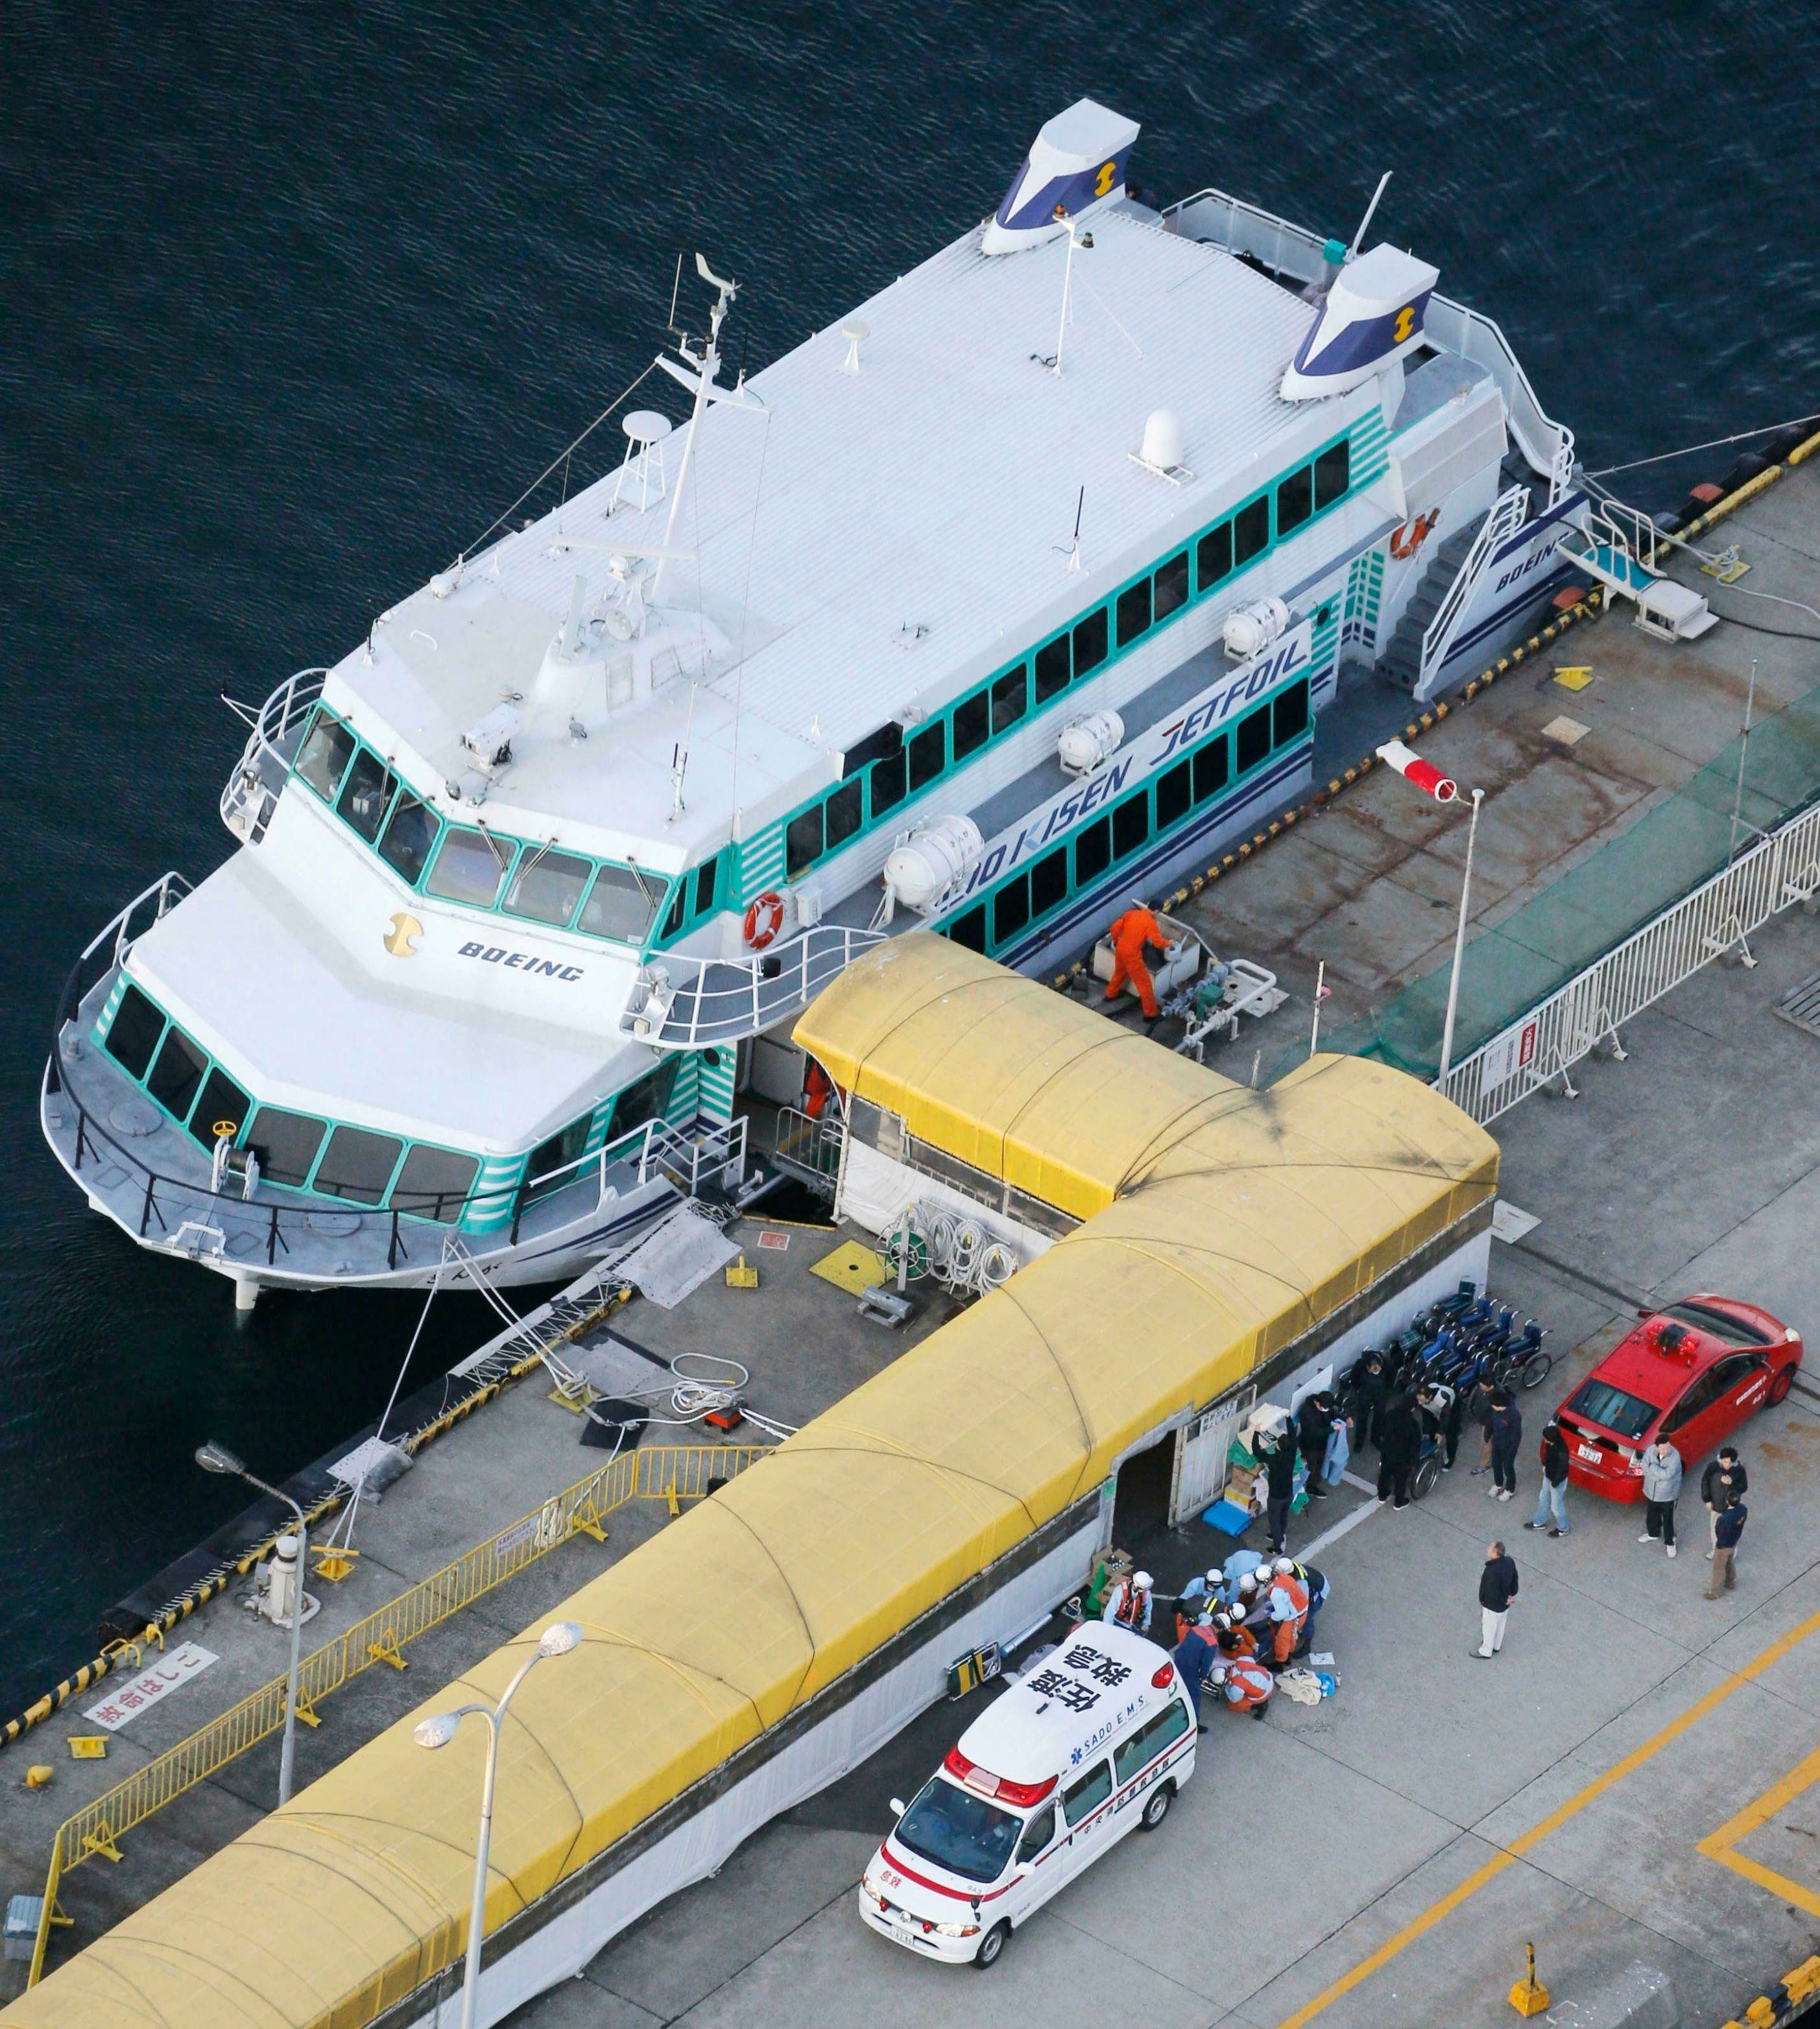 Over 80 Hurt As Japanese Ferry Collides With Object Suspected To Be A Whale